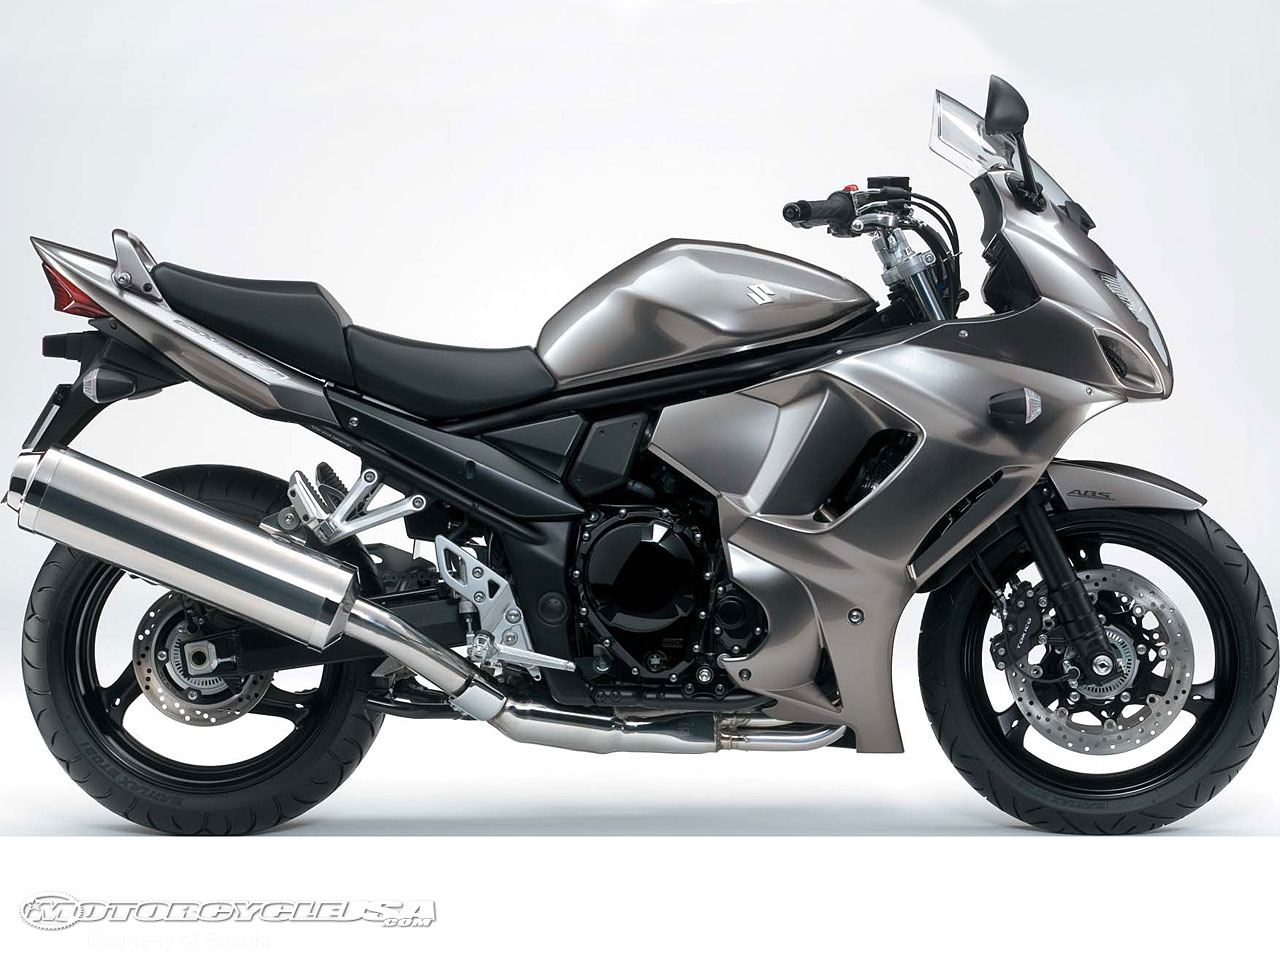 2013 suzuki gsx 1250 fa pics specs and information. Black Bedroom Furniture Sets. Home Design Ideas